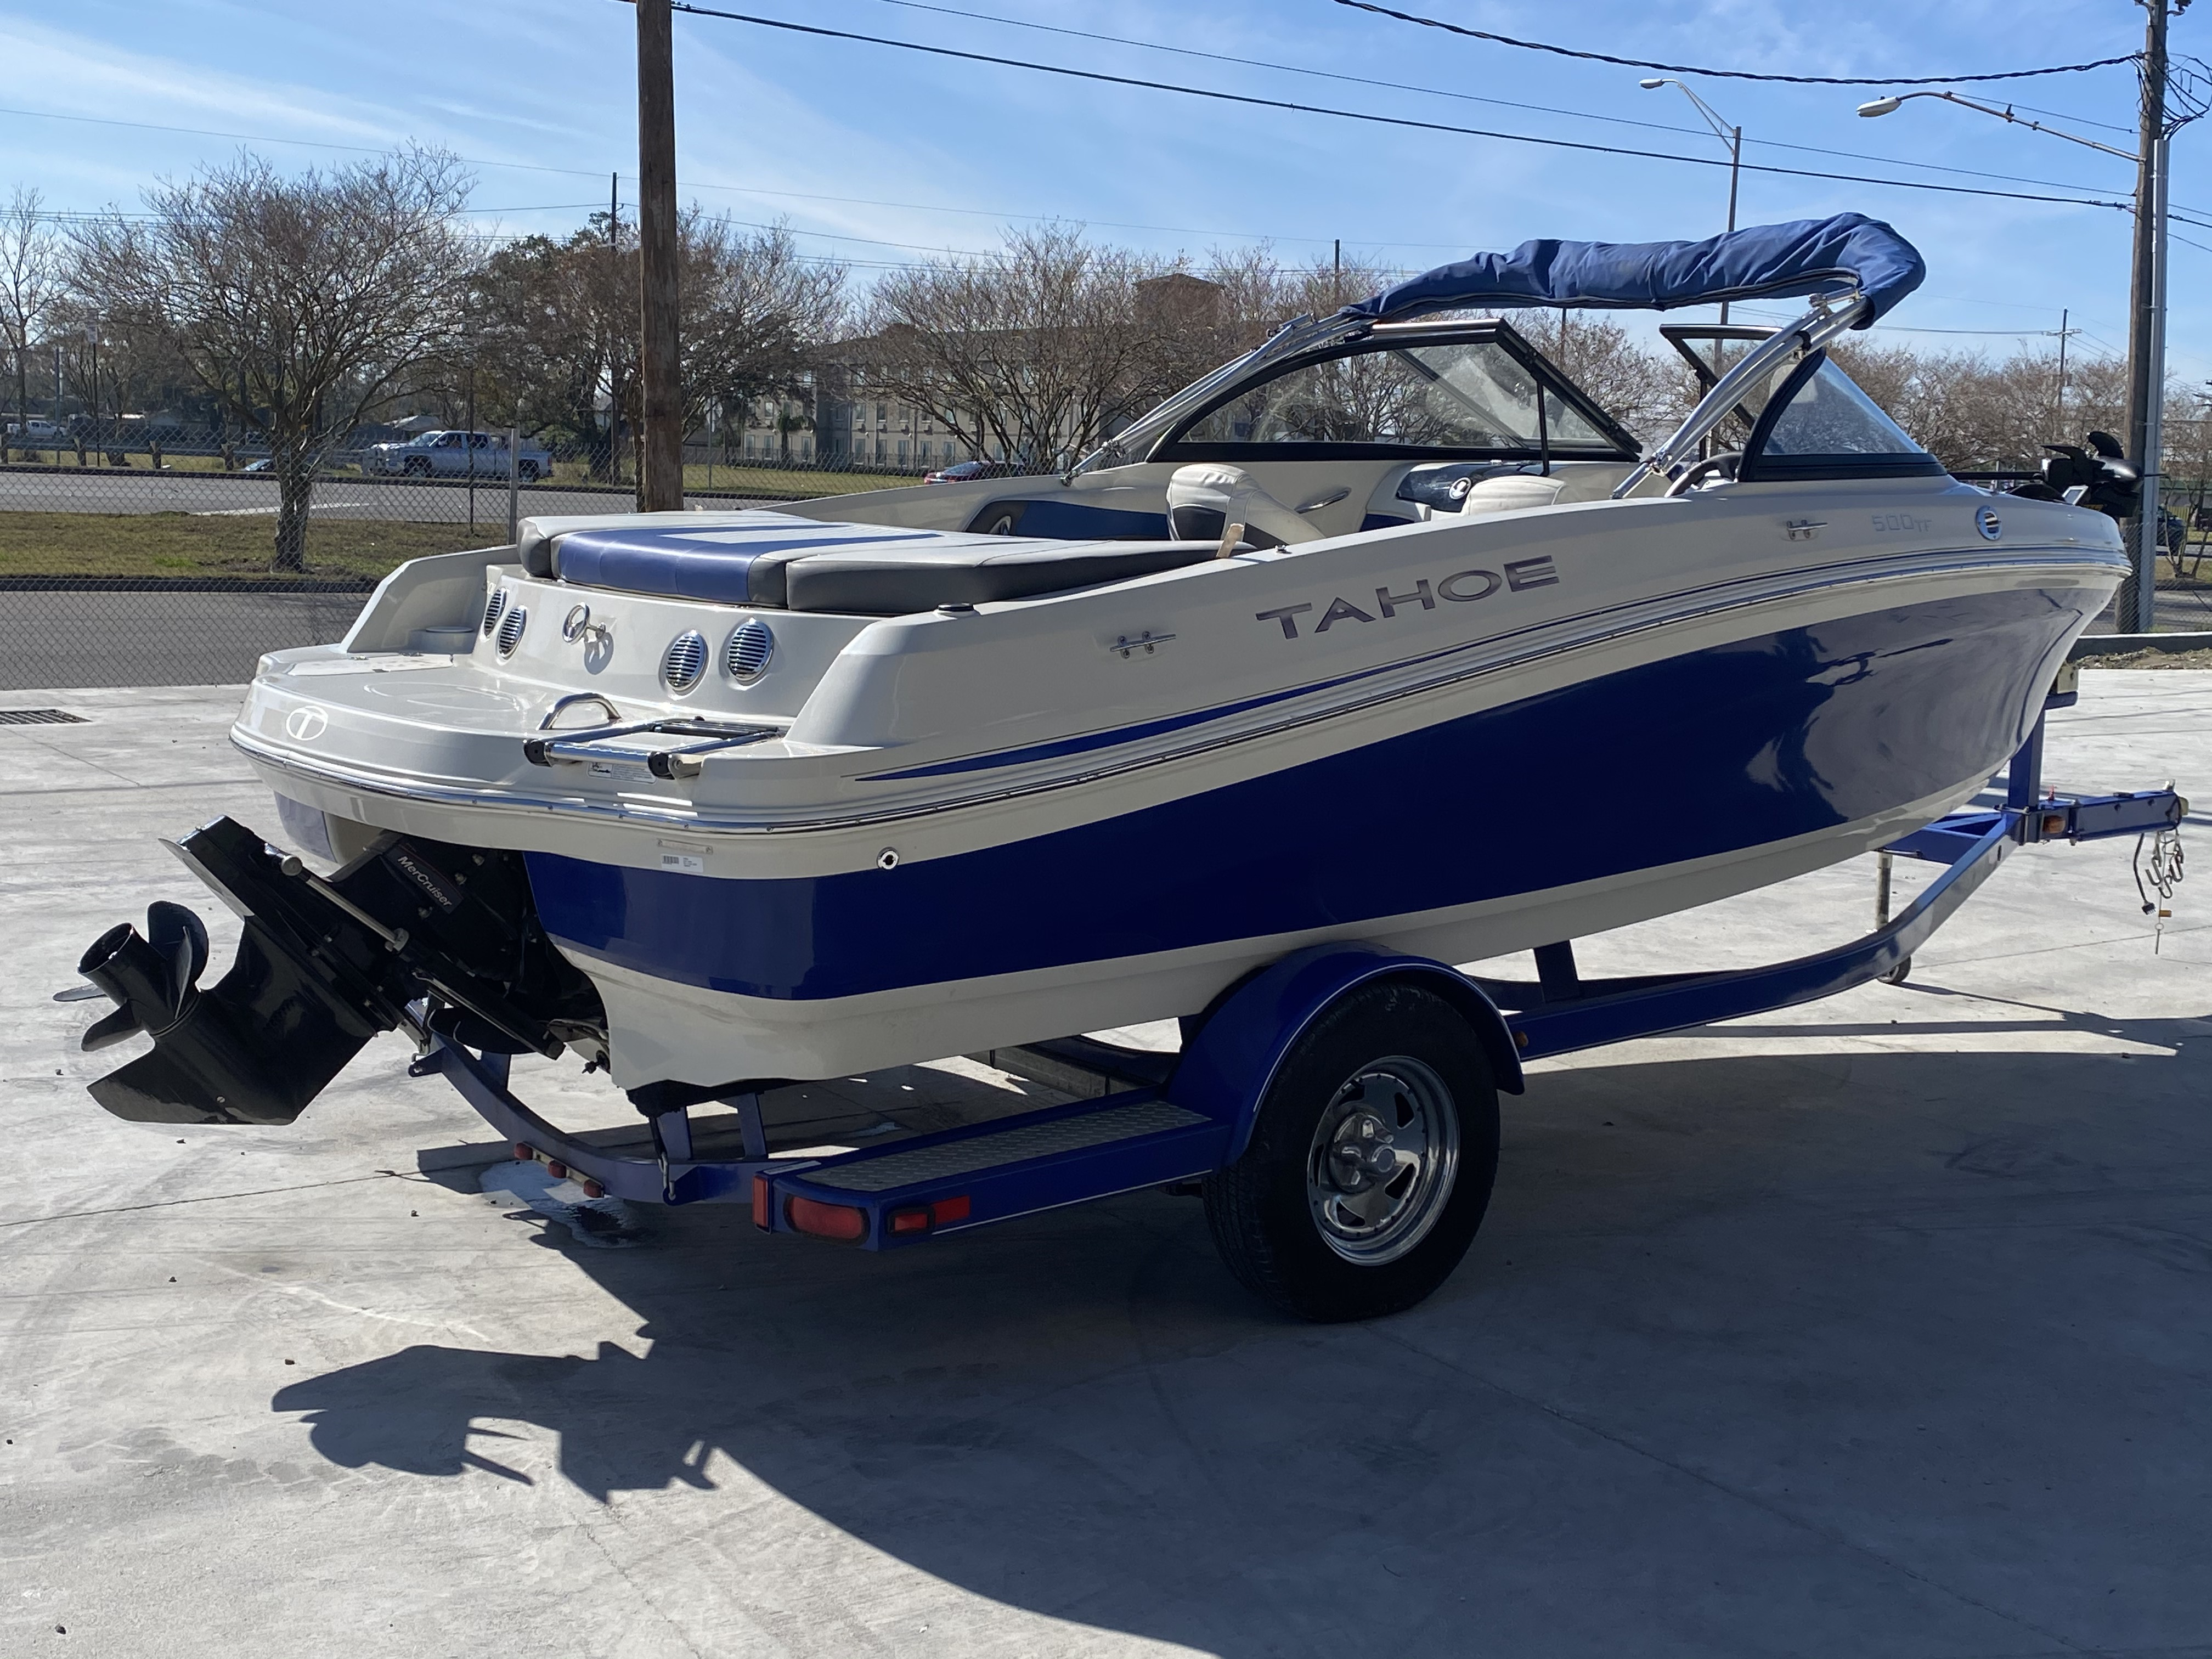 2015 Tahoe boat for sale, model of the boat is 500 TF & Image # 3 of 12